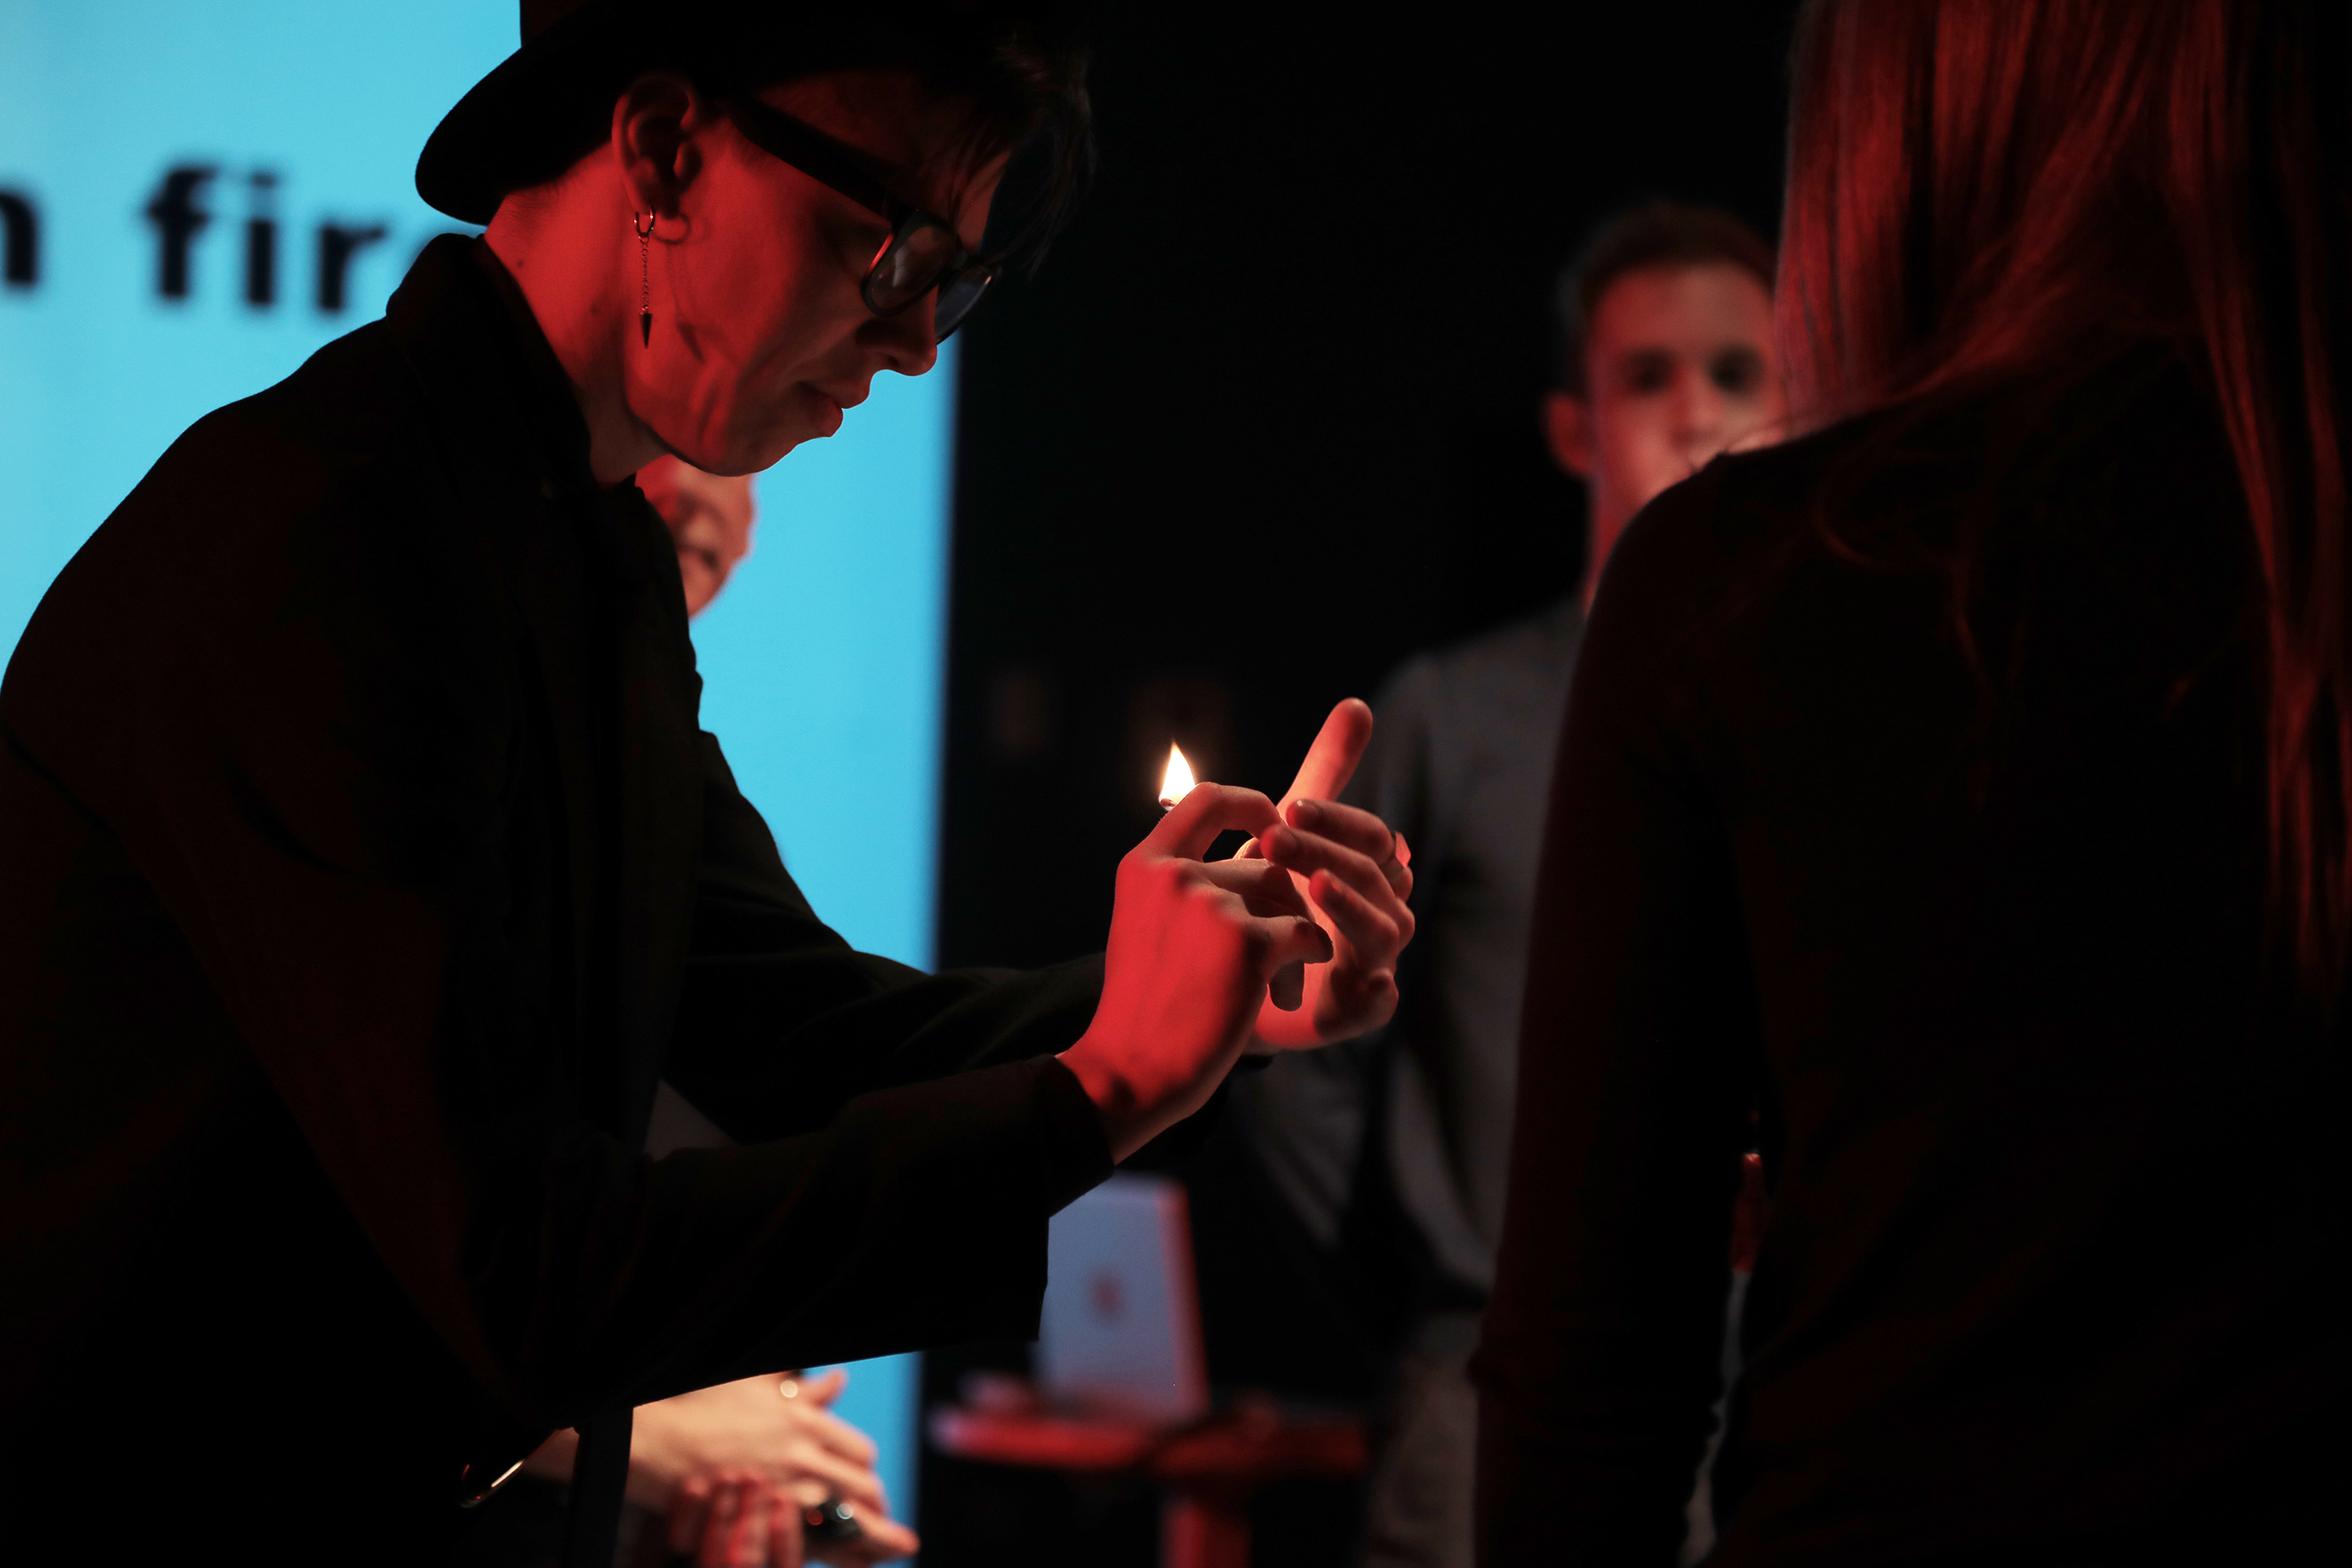 person holding a candle onstage